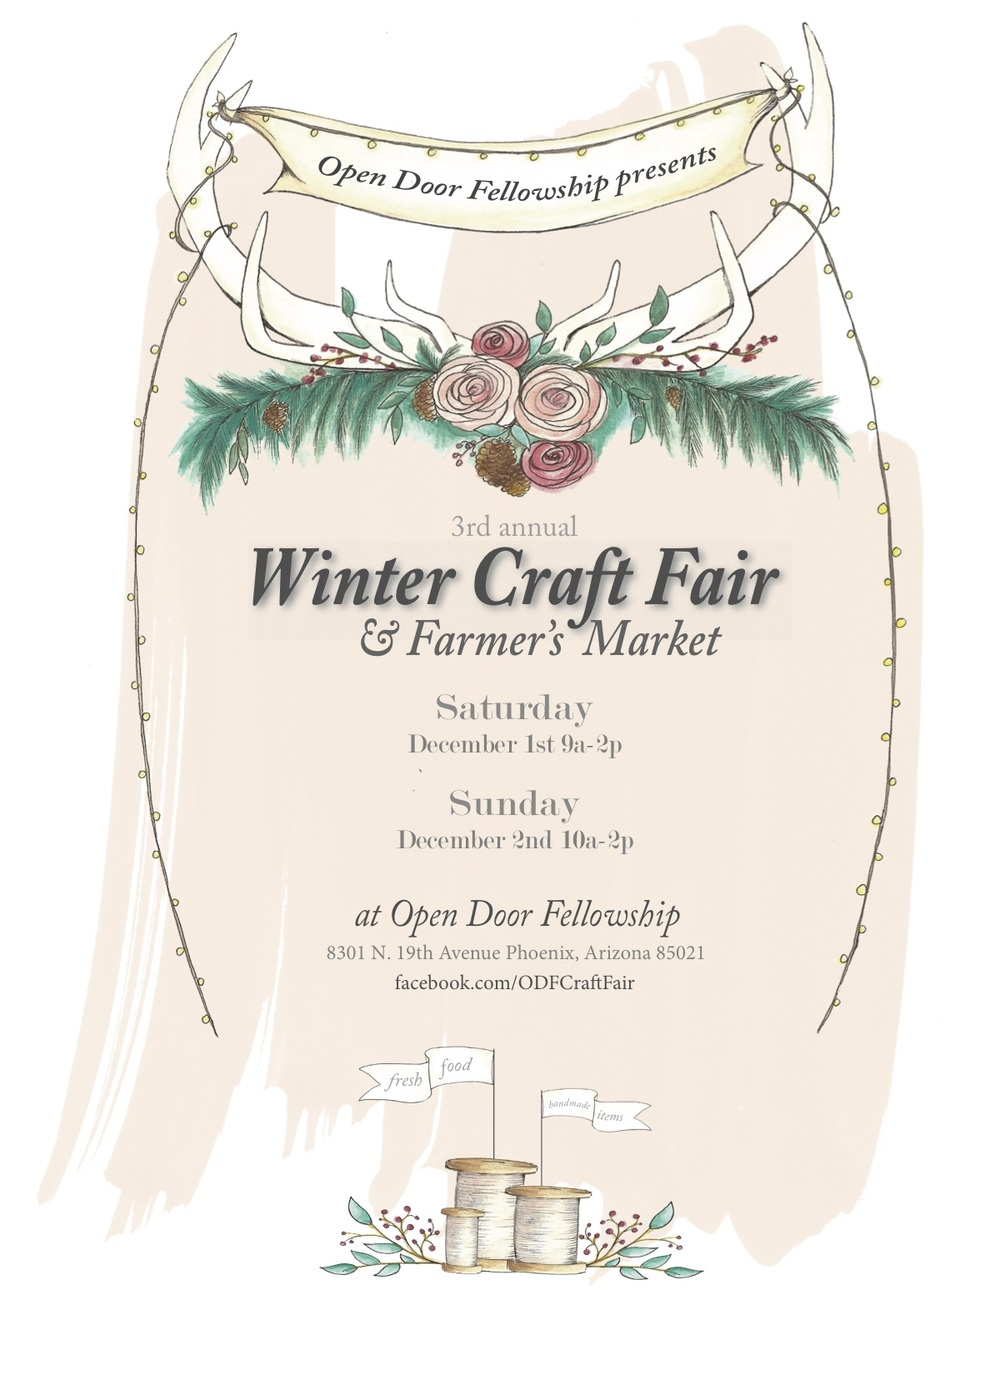 Craft Fair Flyer copy.jpg